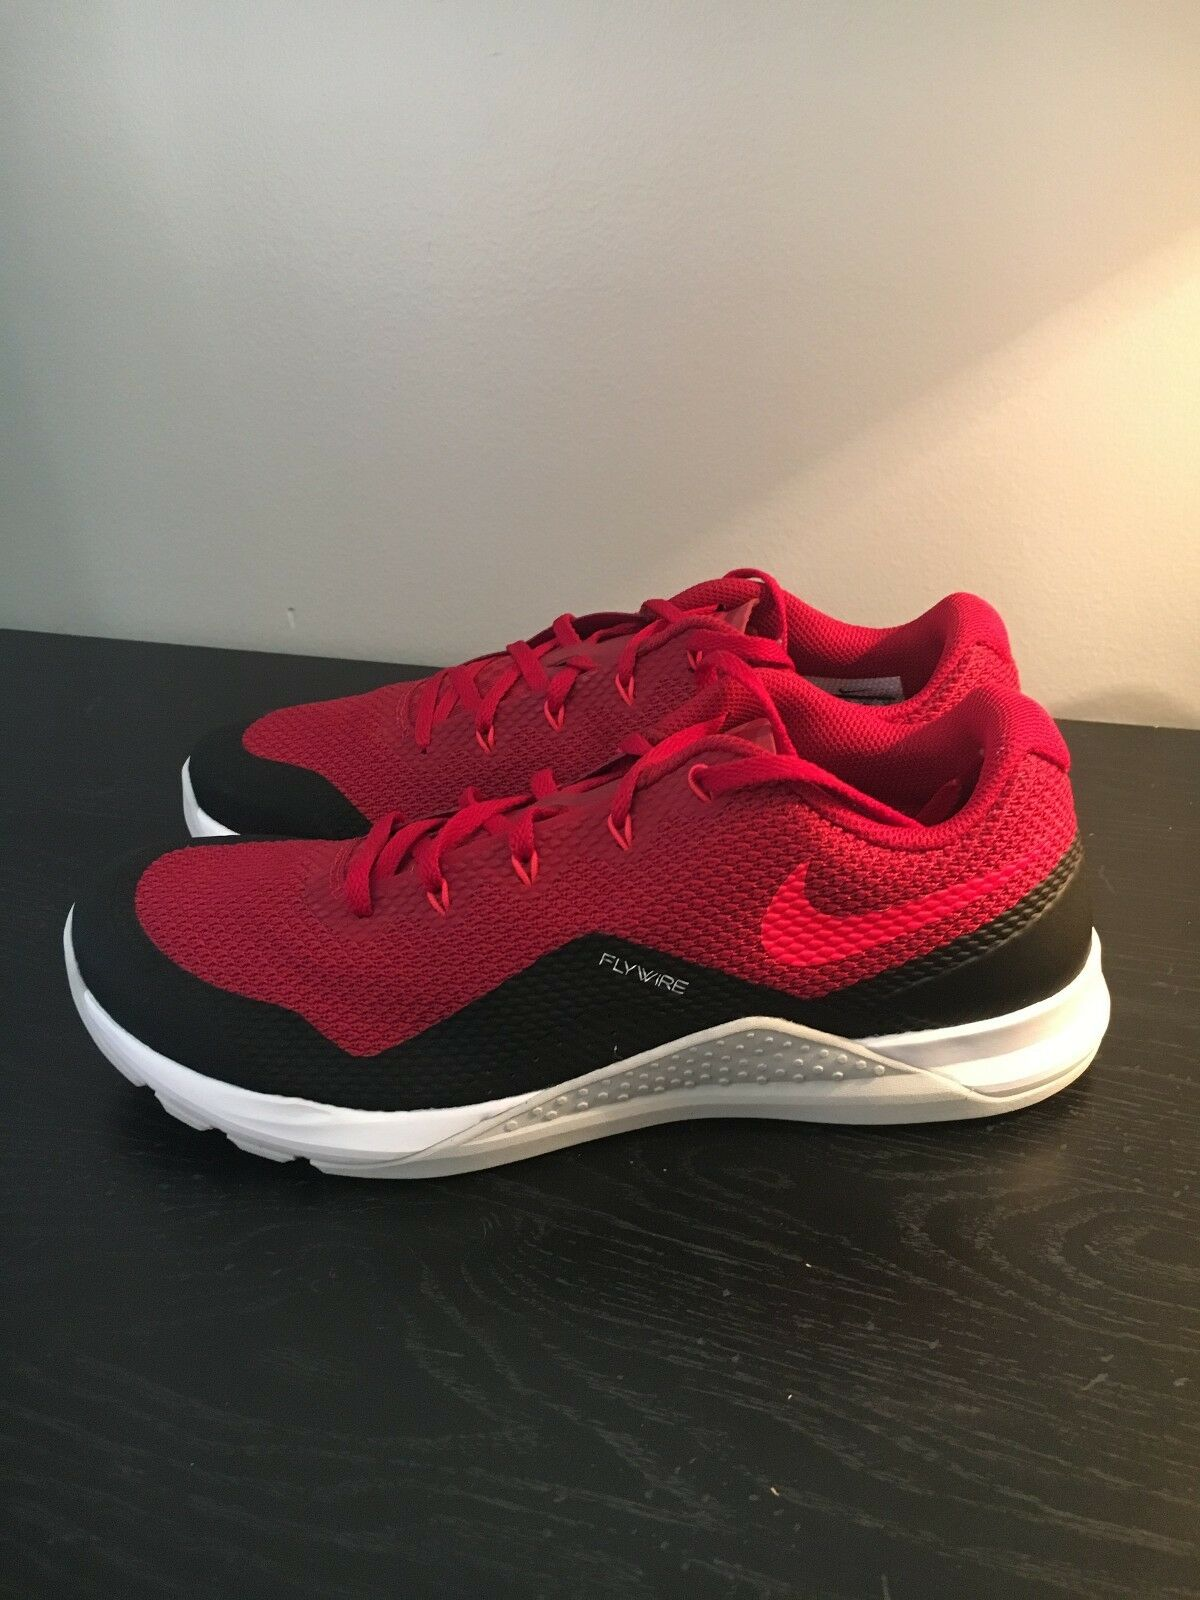 Nike Metcon Repper Dsx Shoes size 11 898048-601